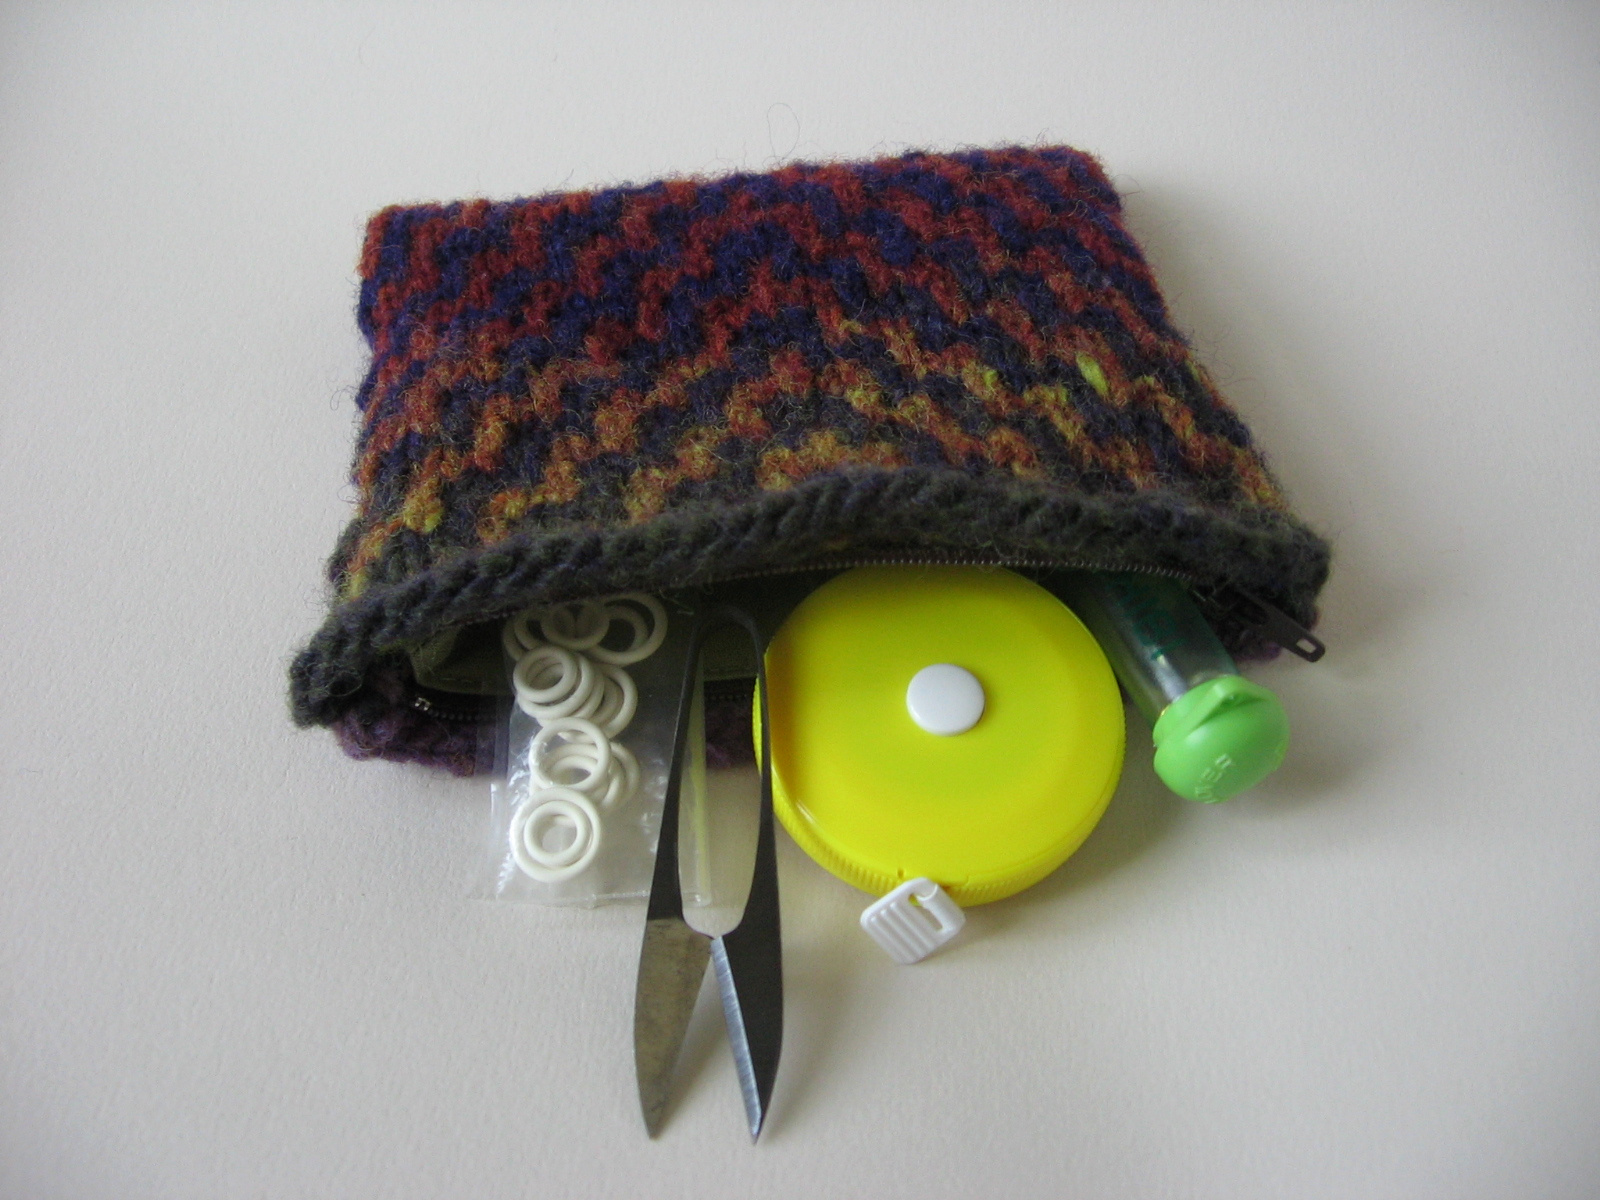 versus: Mosaic Knitted Pouches Tutorial with Guest Kate of Needle and Spatula